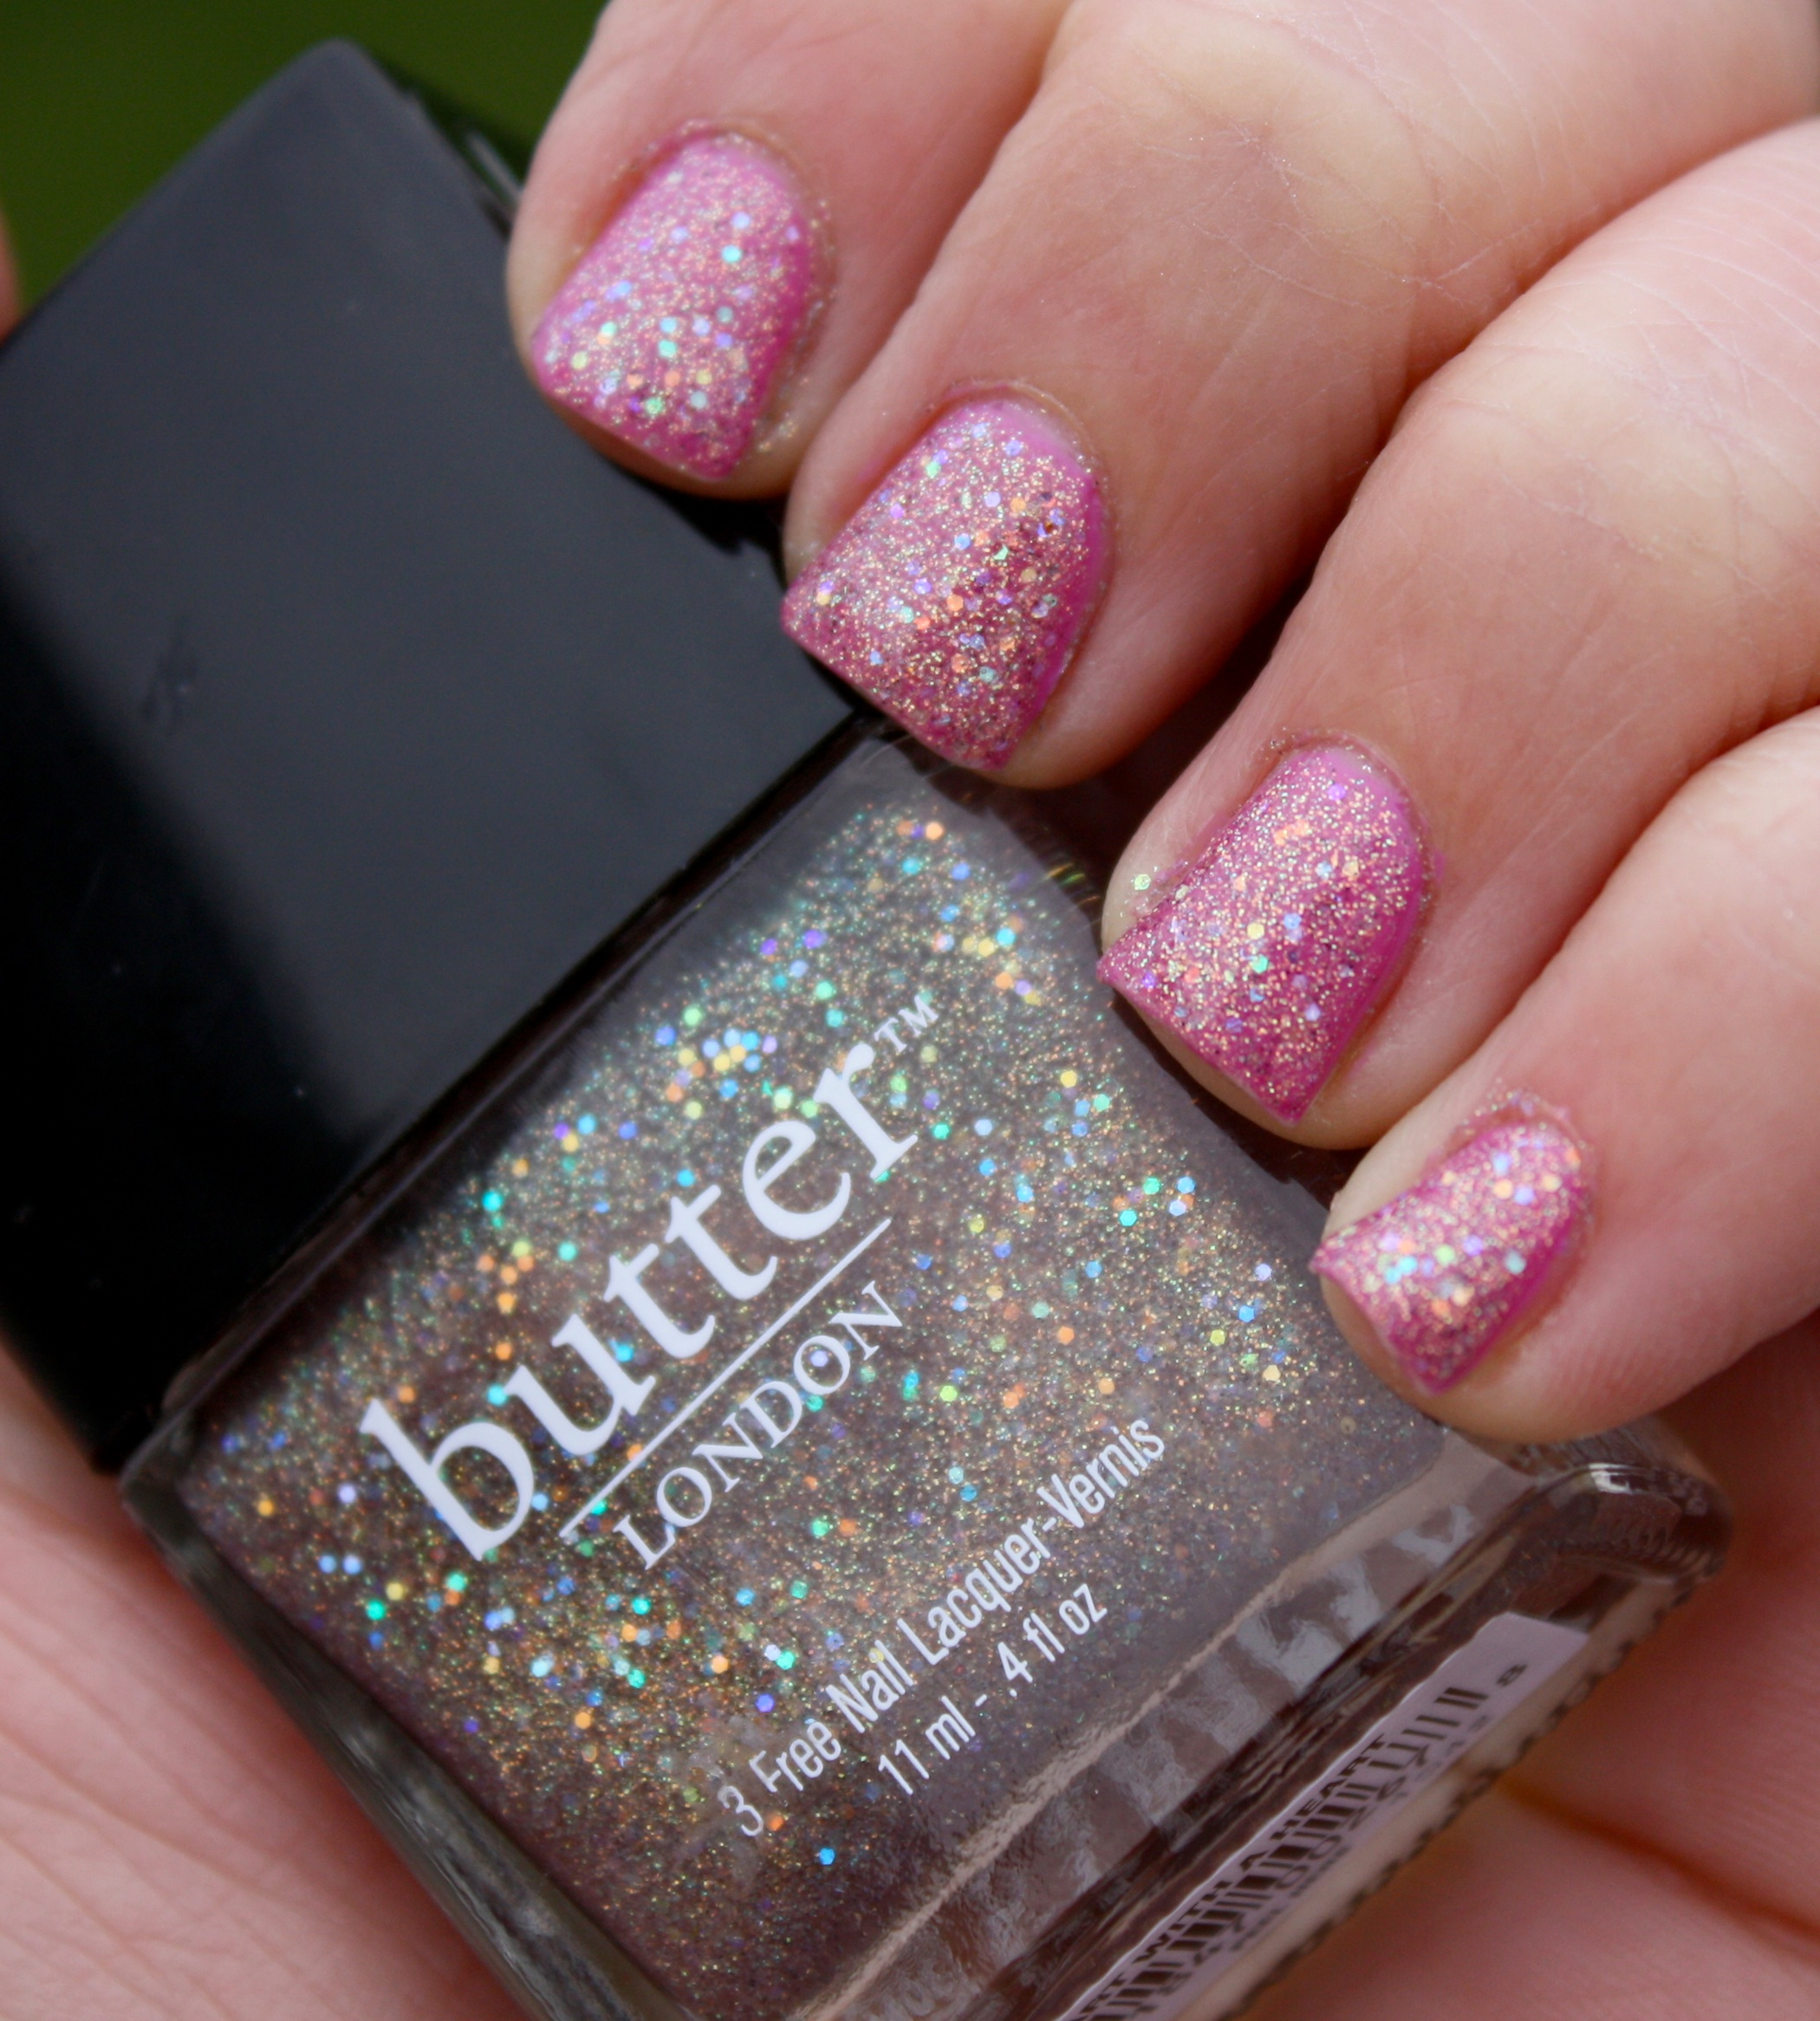 Butter London Tart With A Heart and Essie A Splash of Grenadine ...